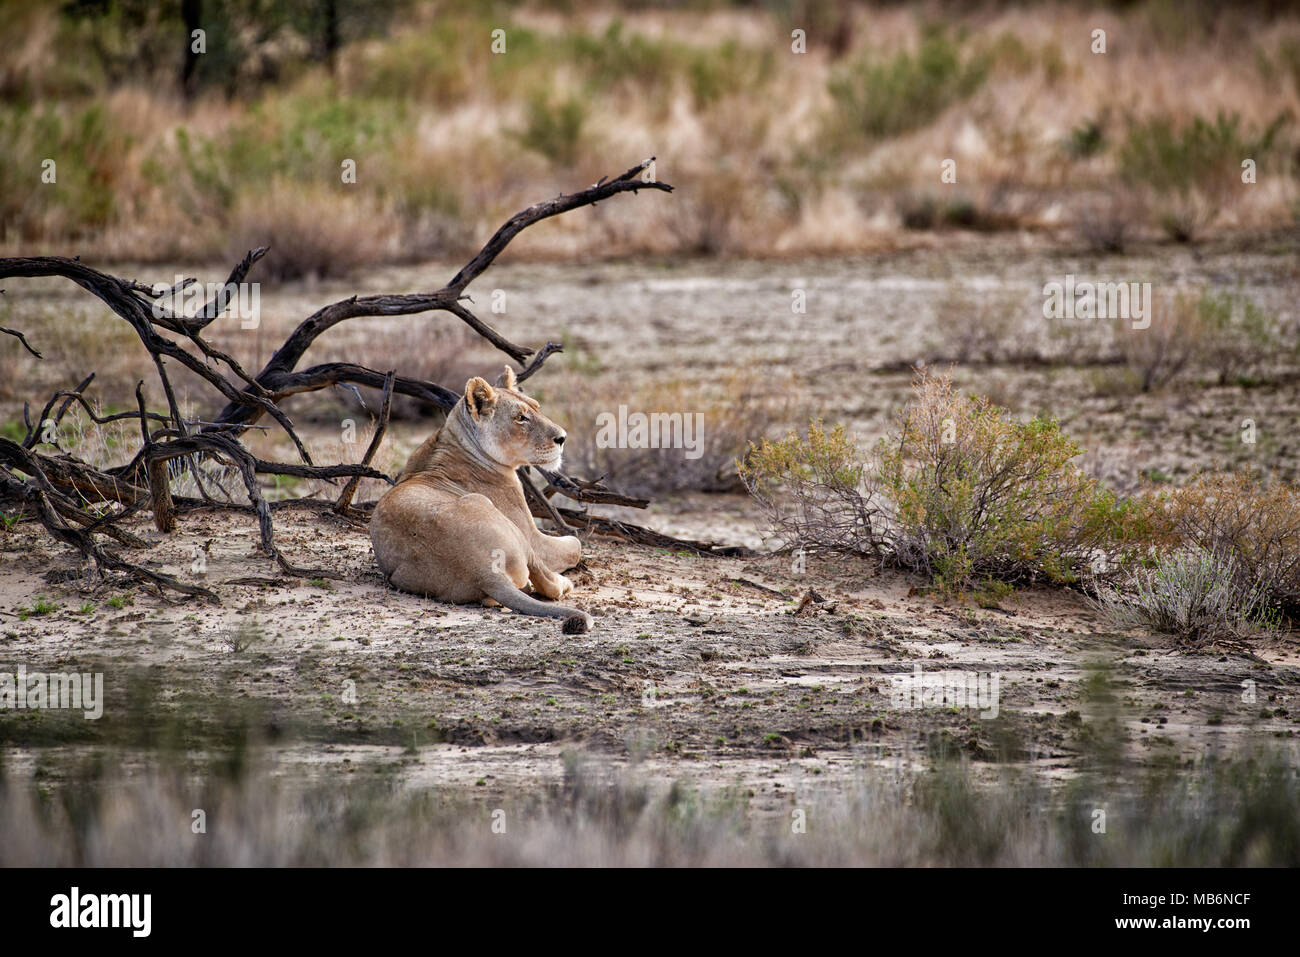 lioness, Panthera leo, watching the area, Kgalagadi Transfrontier Park, South Africa, Africa - Stock Image